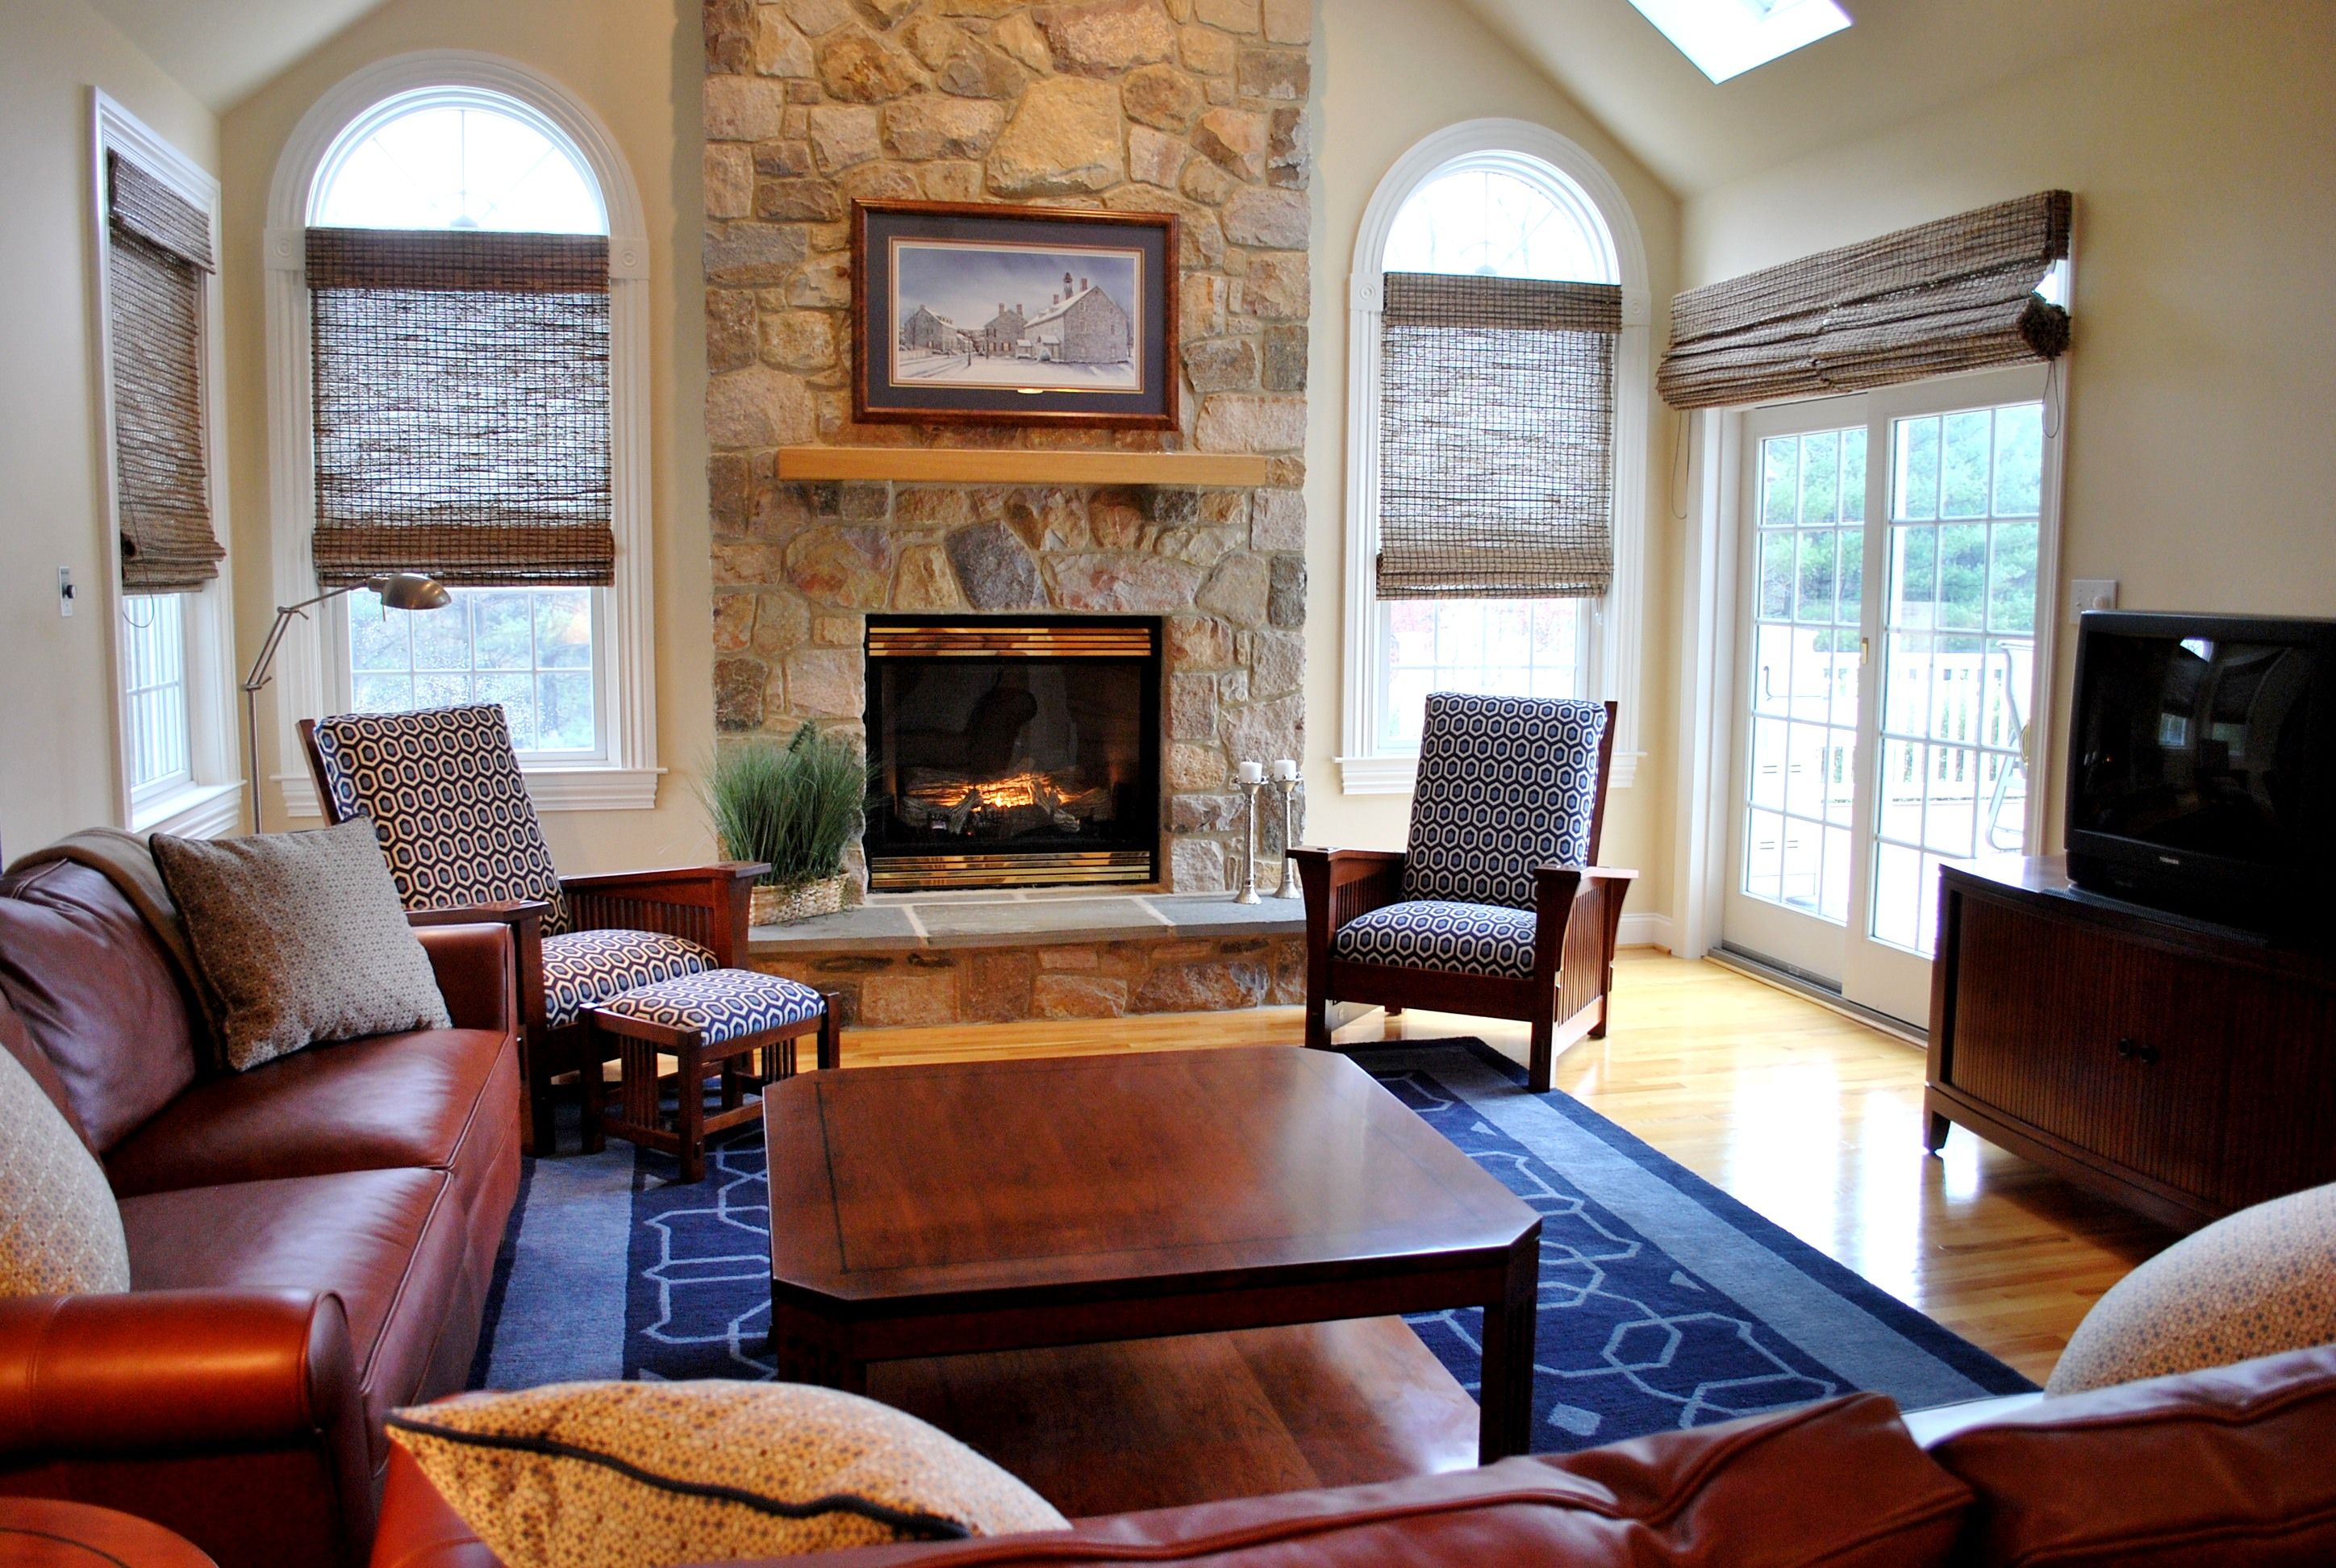 traditional living room with a stone fireplace, vaulted ceiling with